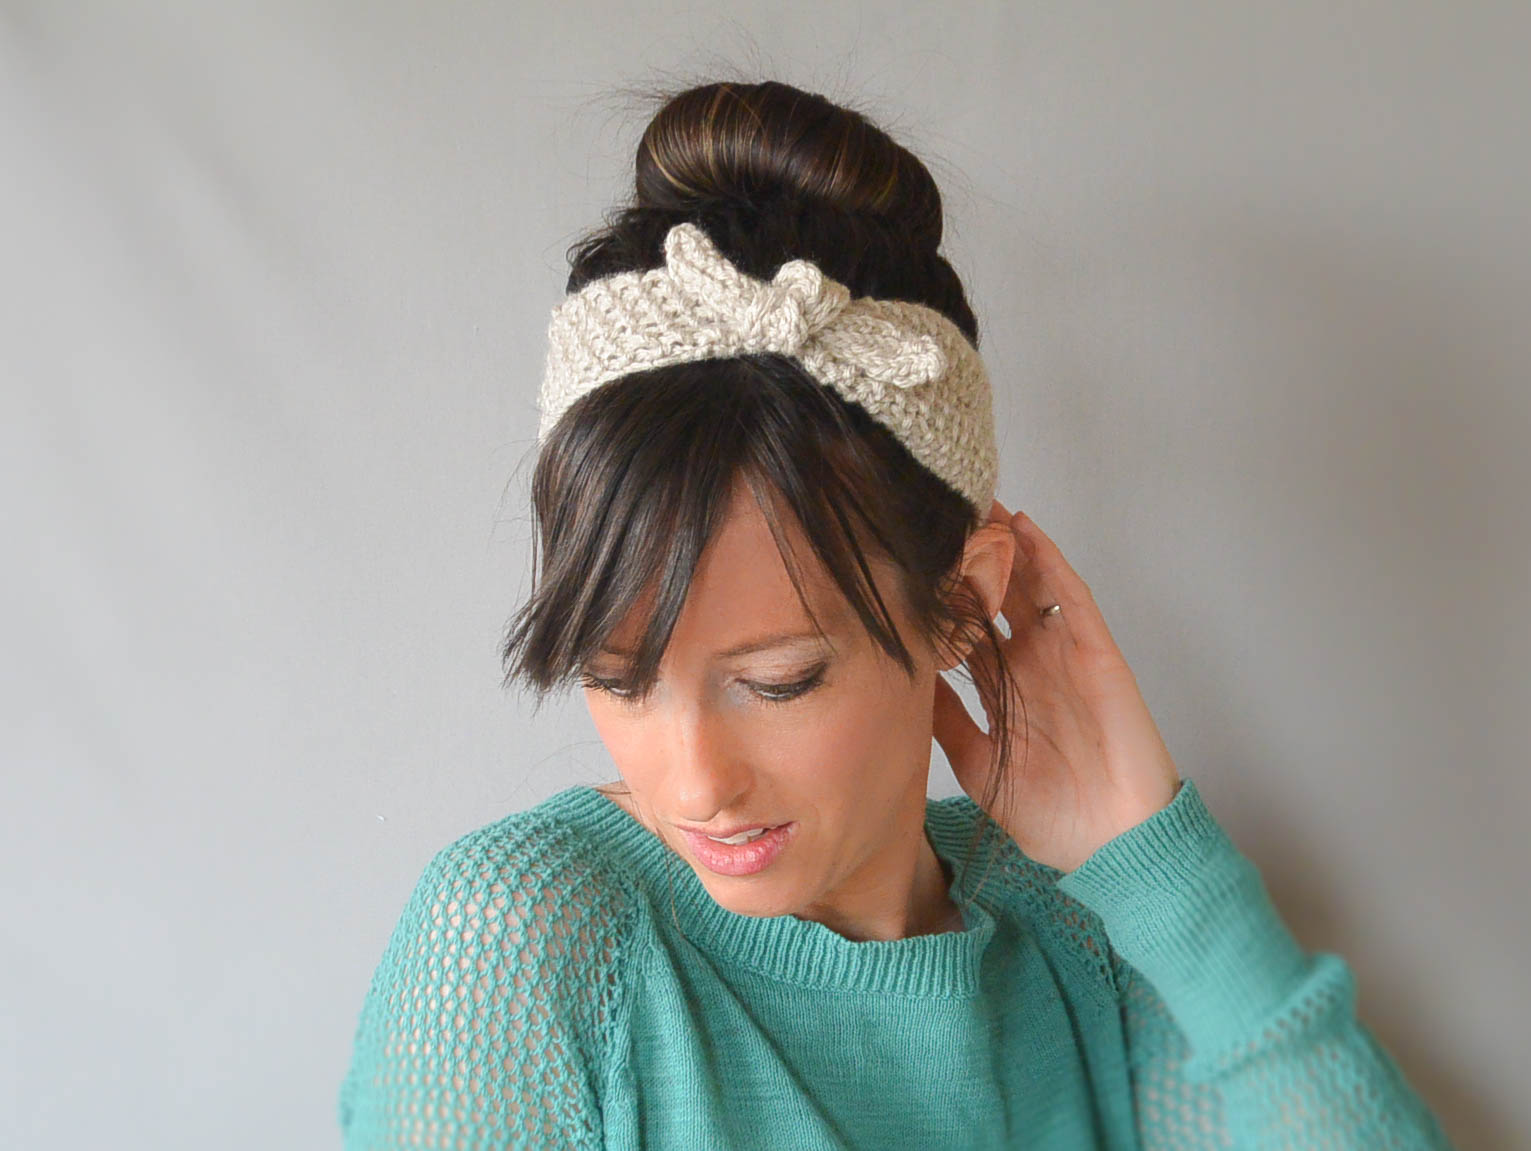 Knit Pattern For Headband : Vintage Knit Tie Headband Pattern   Mama In A Stitch